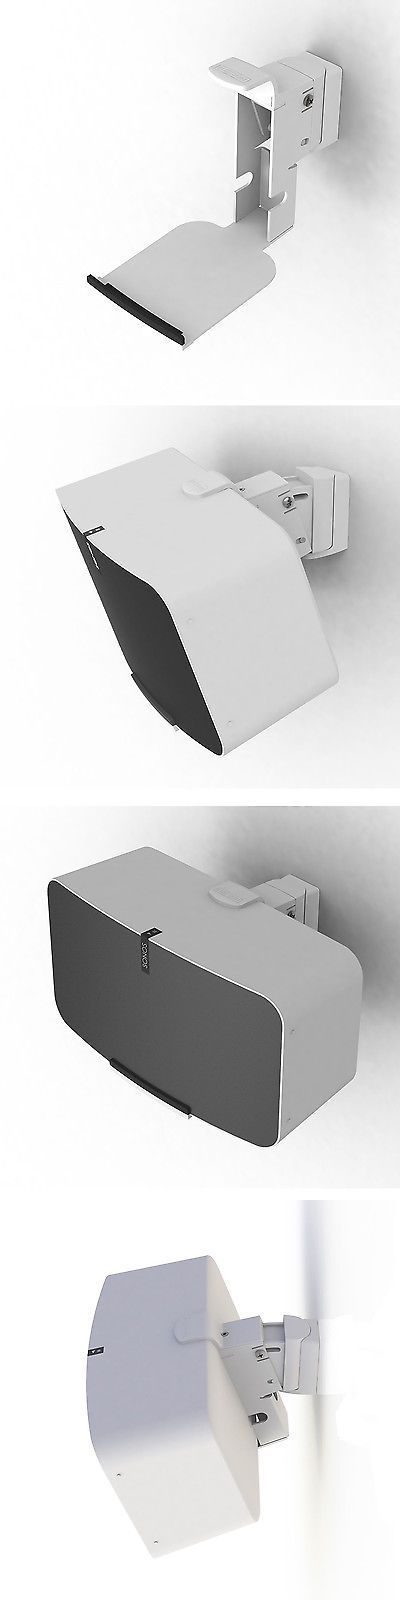 Speaker Mounts and Stands: Flexson Wall Mount For Sonos Play:5 - Gen. 2 (White) -> BUY IT NOW ONLY: $99.99 on eBay!